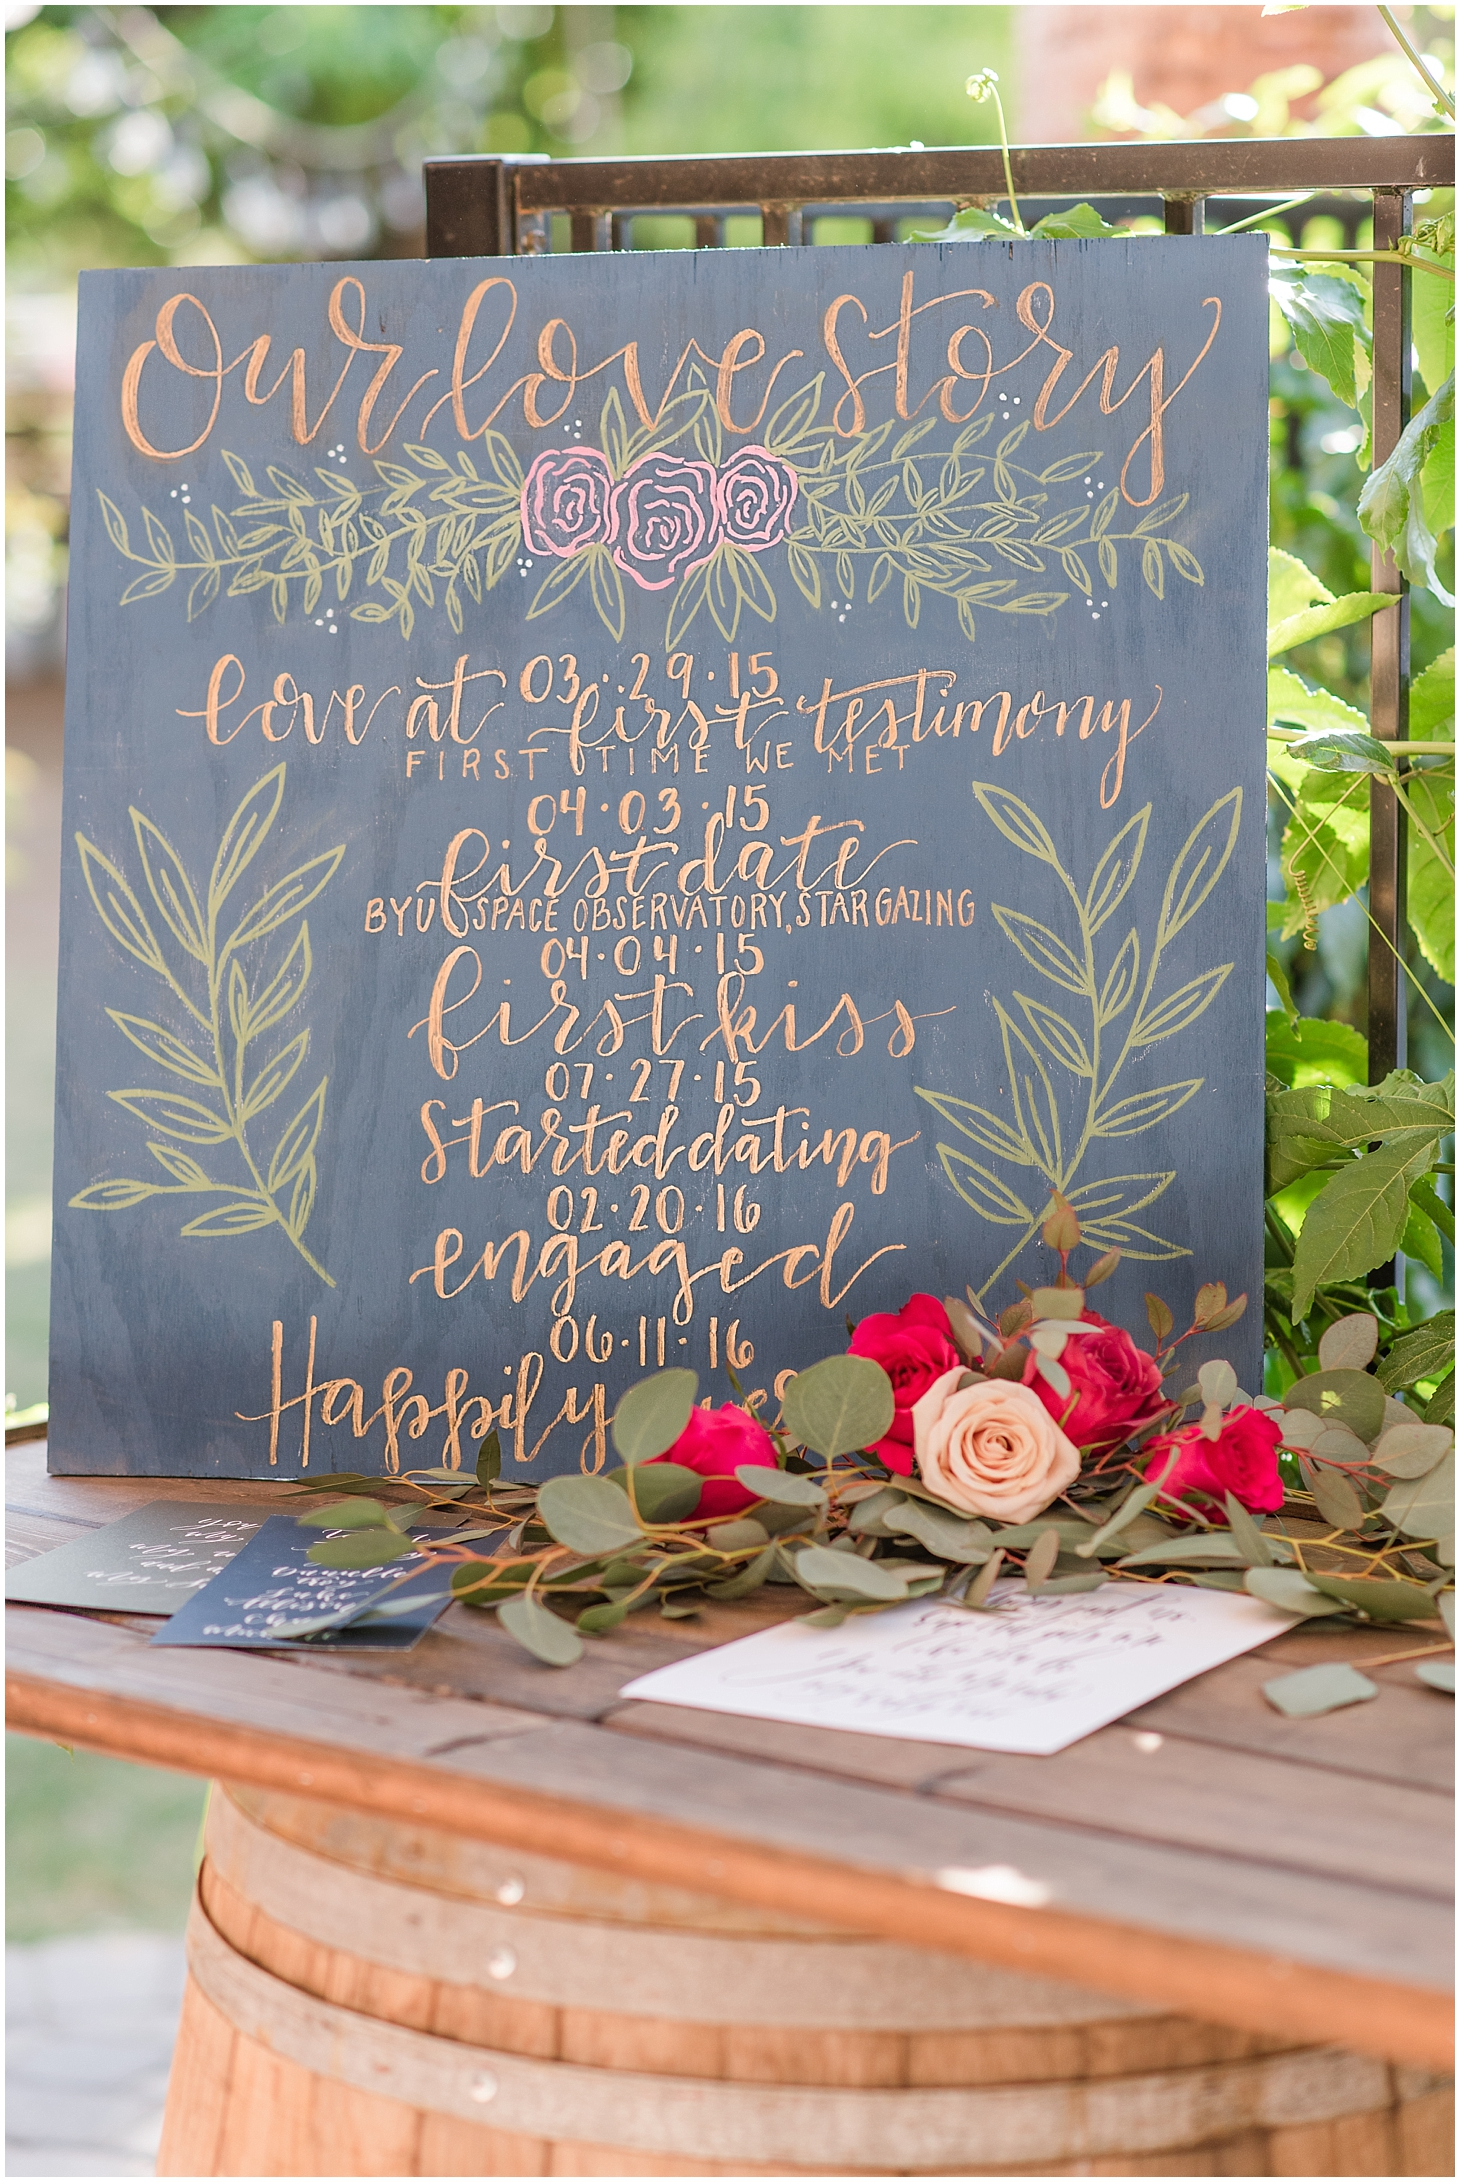 Styled wedding shoot at Modern Farm in Gilbert with bride and groom Kristin and Daniel Travis. Photo taken by Jade Min Photography.